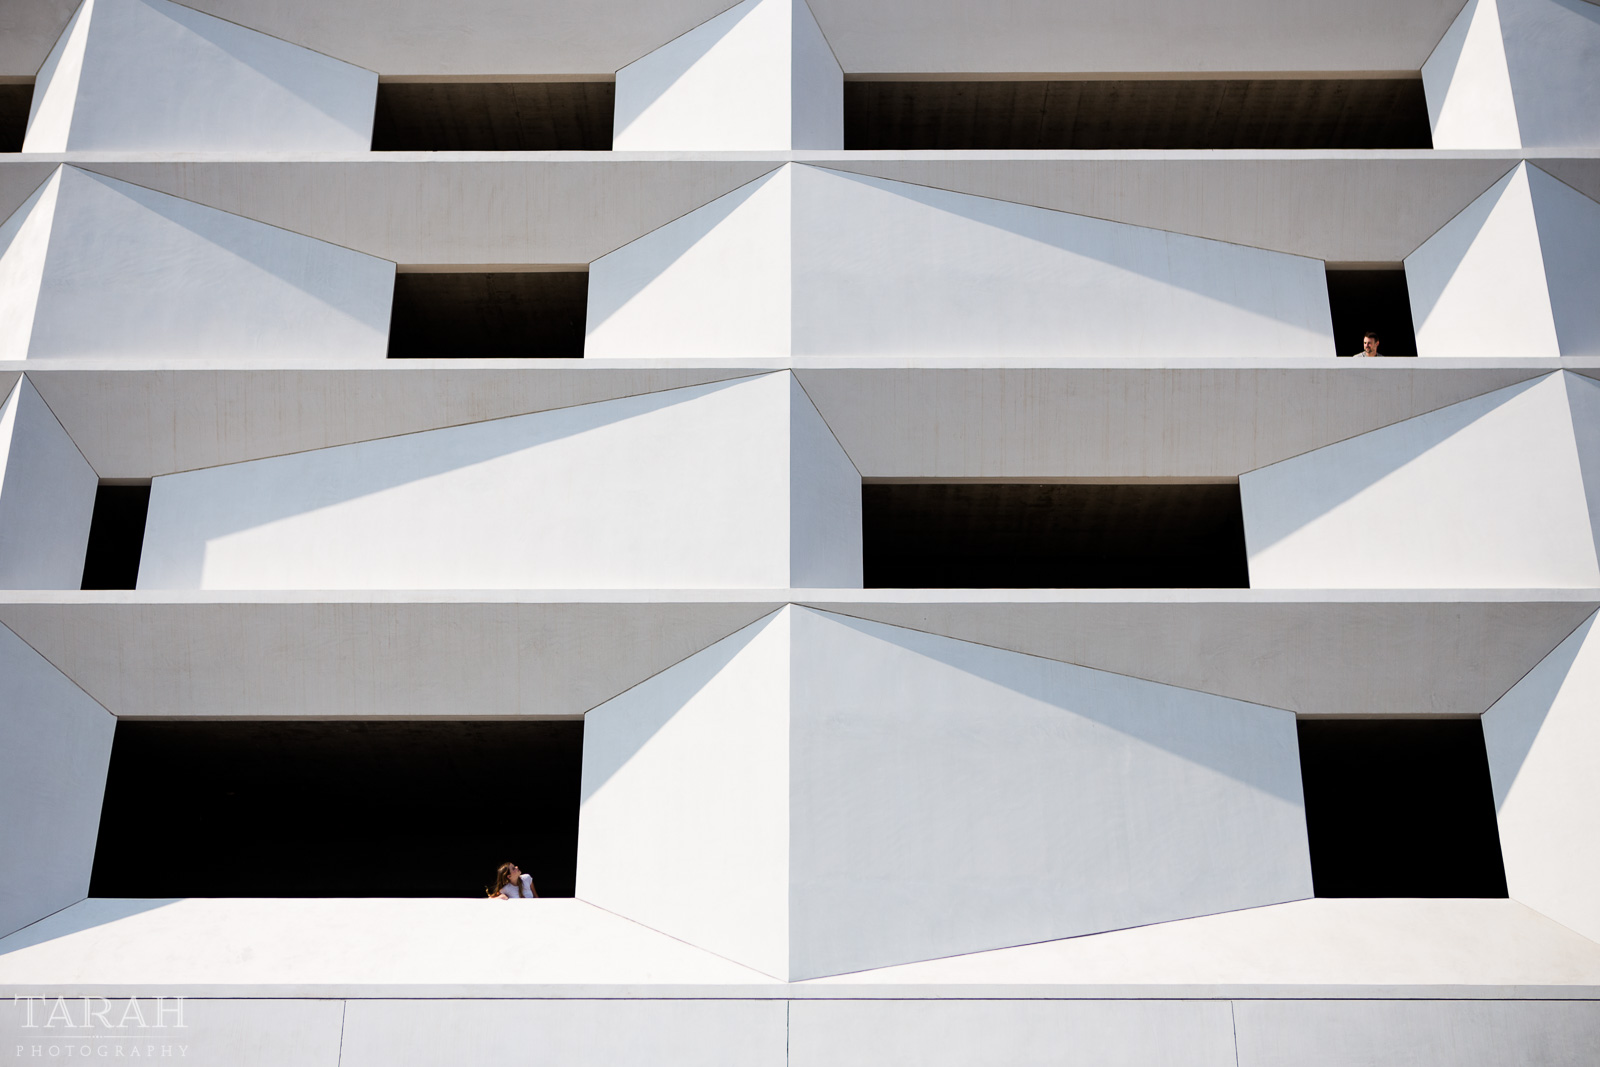 picture of people looking out windows of a parking garage by Tarah Beaven